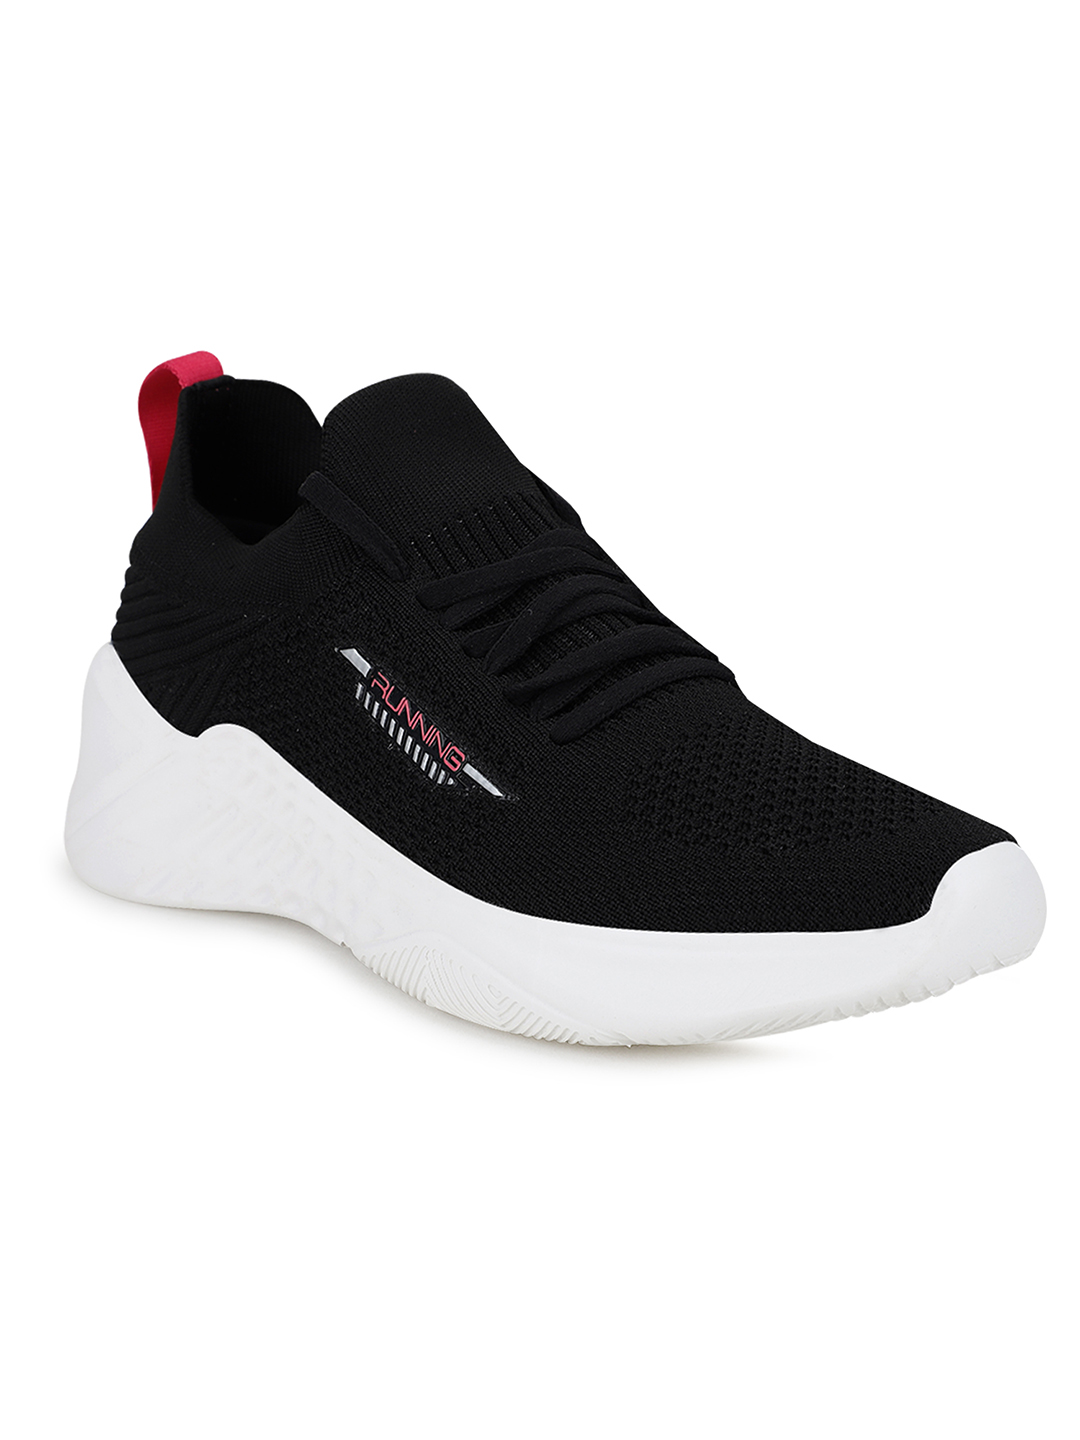 Campus Shoes | FLOSS